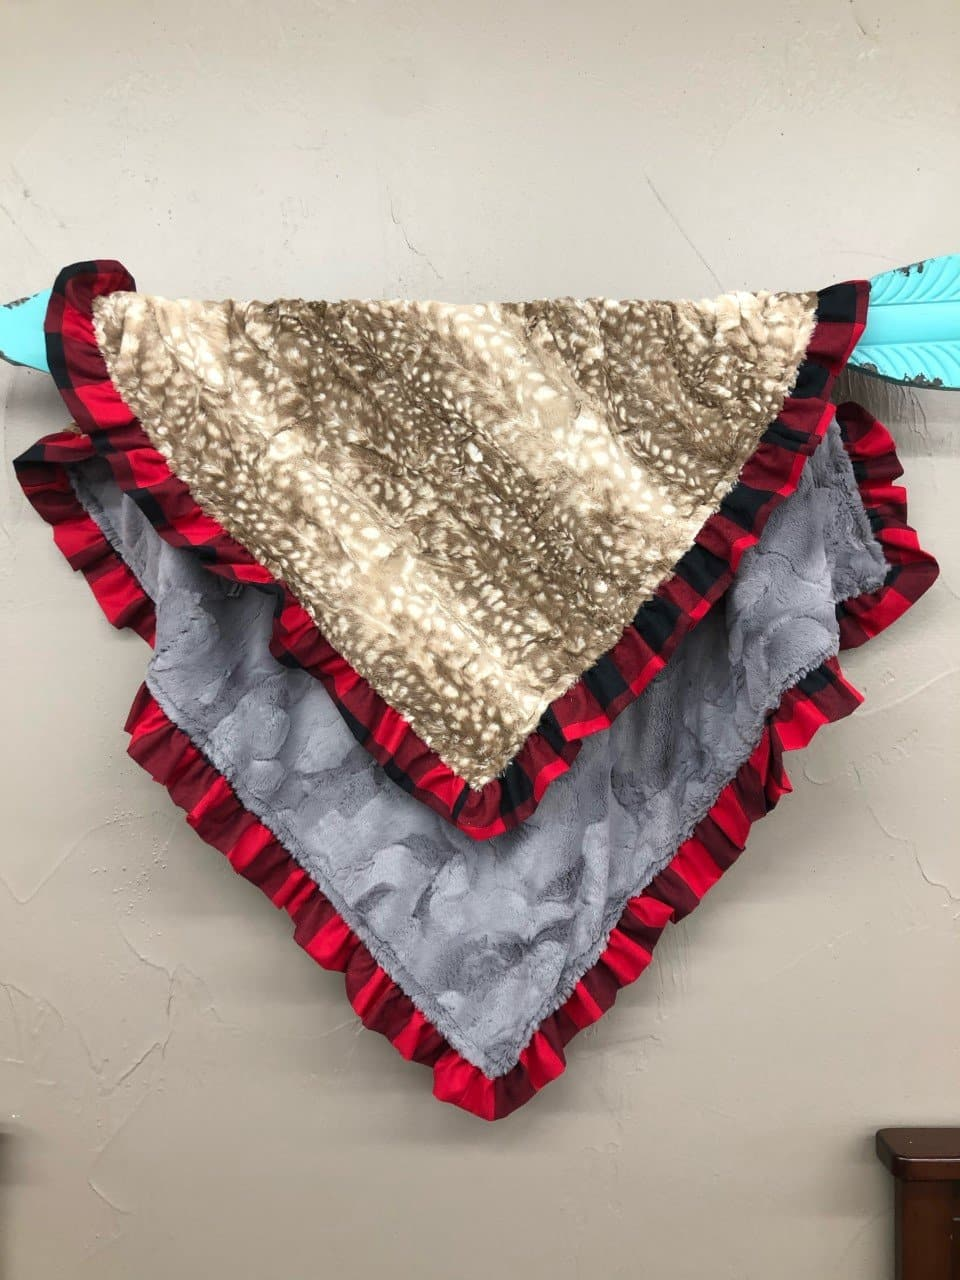 Ruffle Blanket -*1 Name Embroidered Free*Fawn minky and Gray Hide minky with red black check ruffle